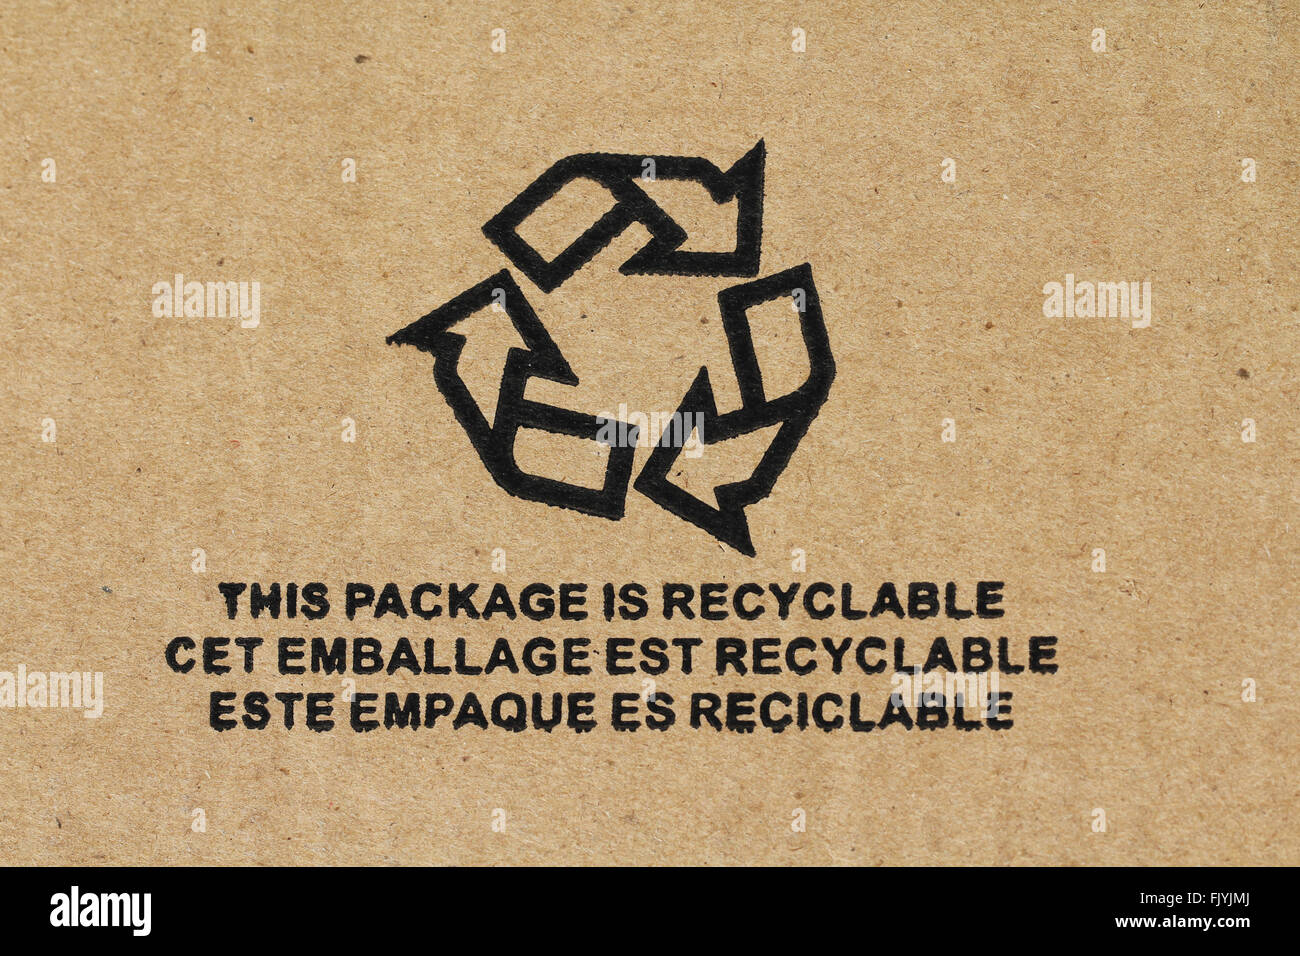 Symbol - Recyclable packaging - Stock Image